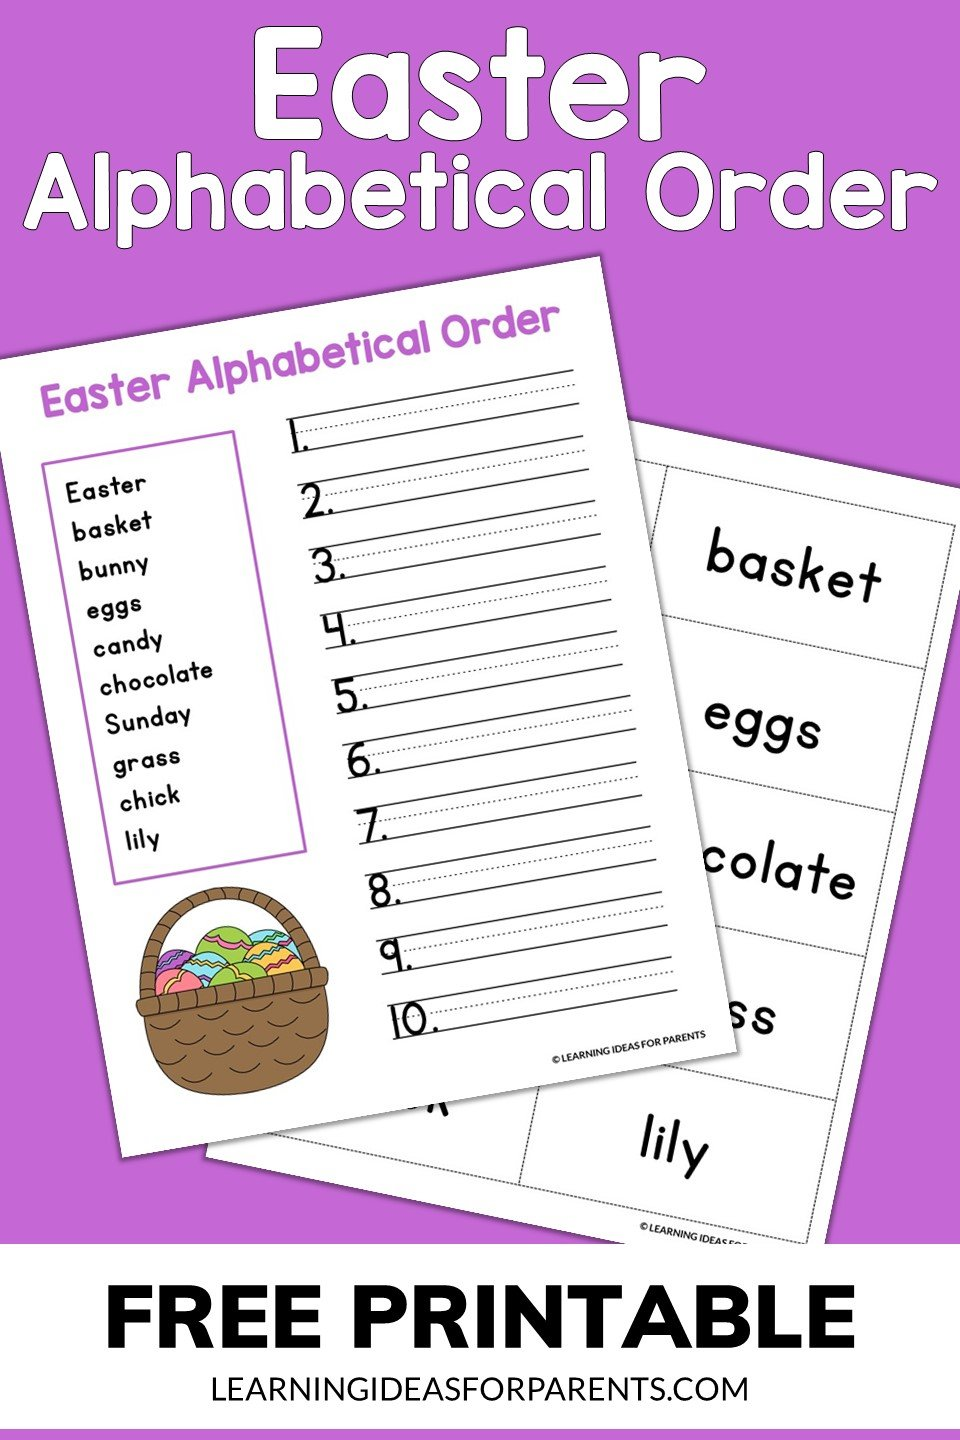 Free printable Easter alphabetical order activity.